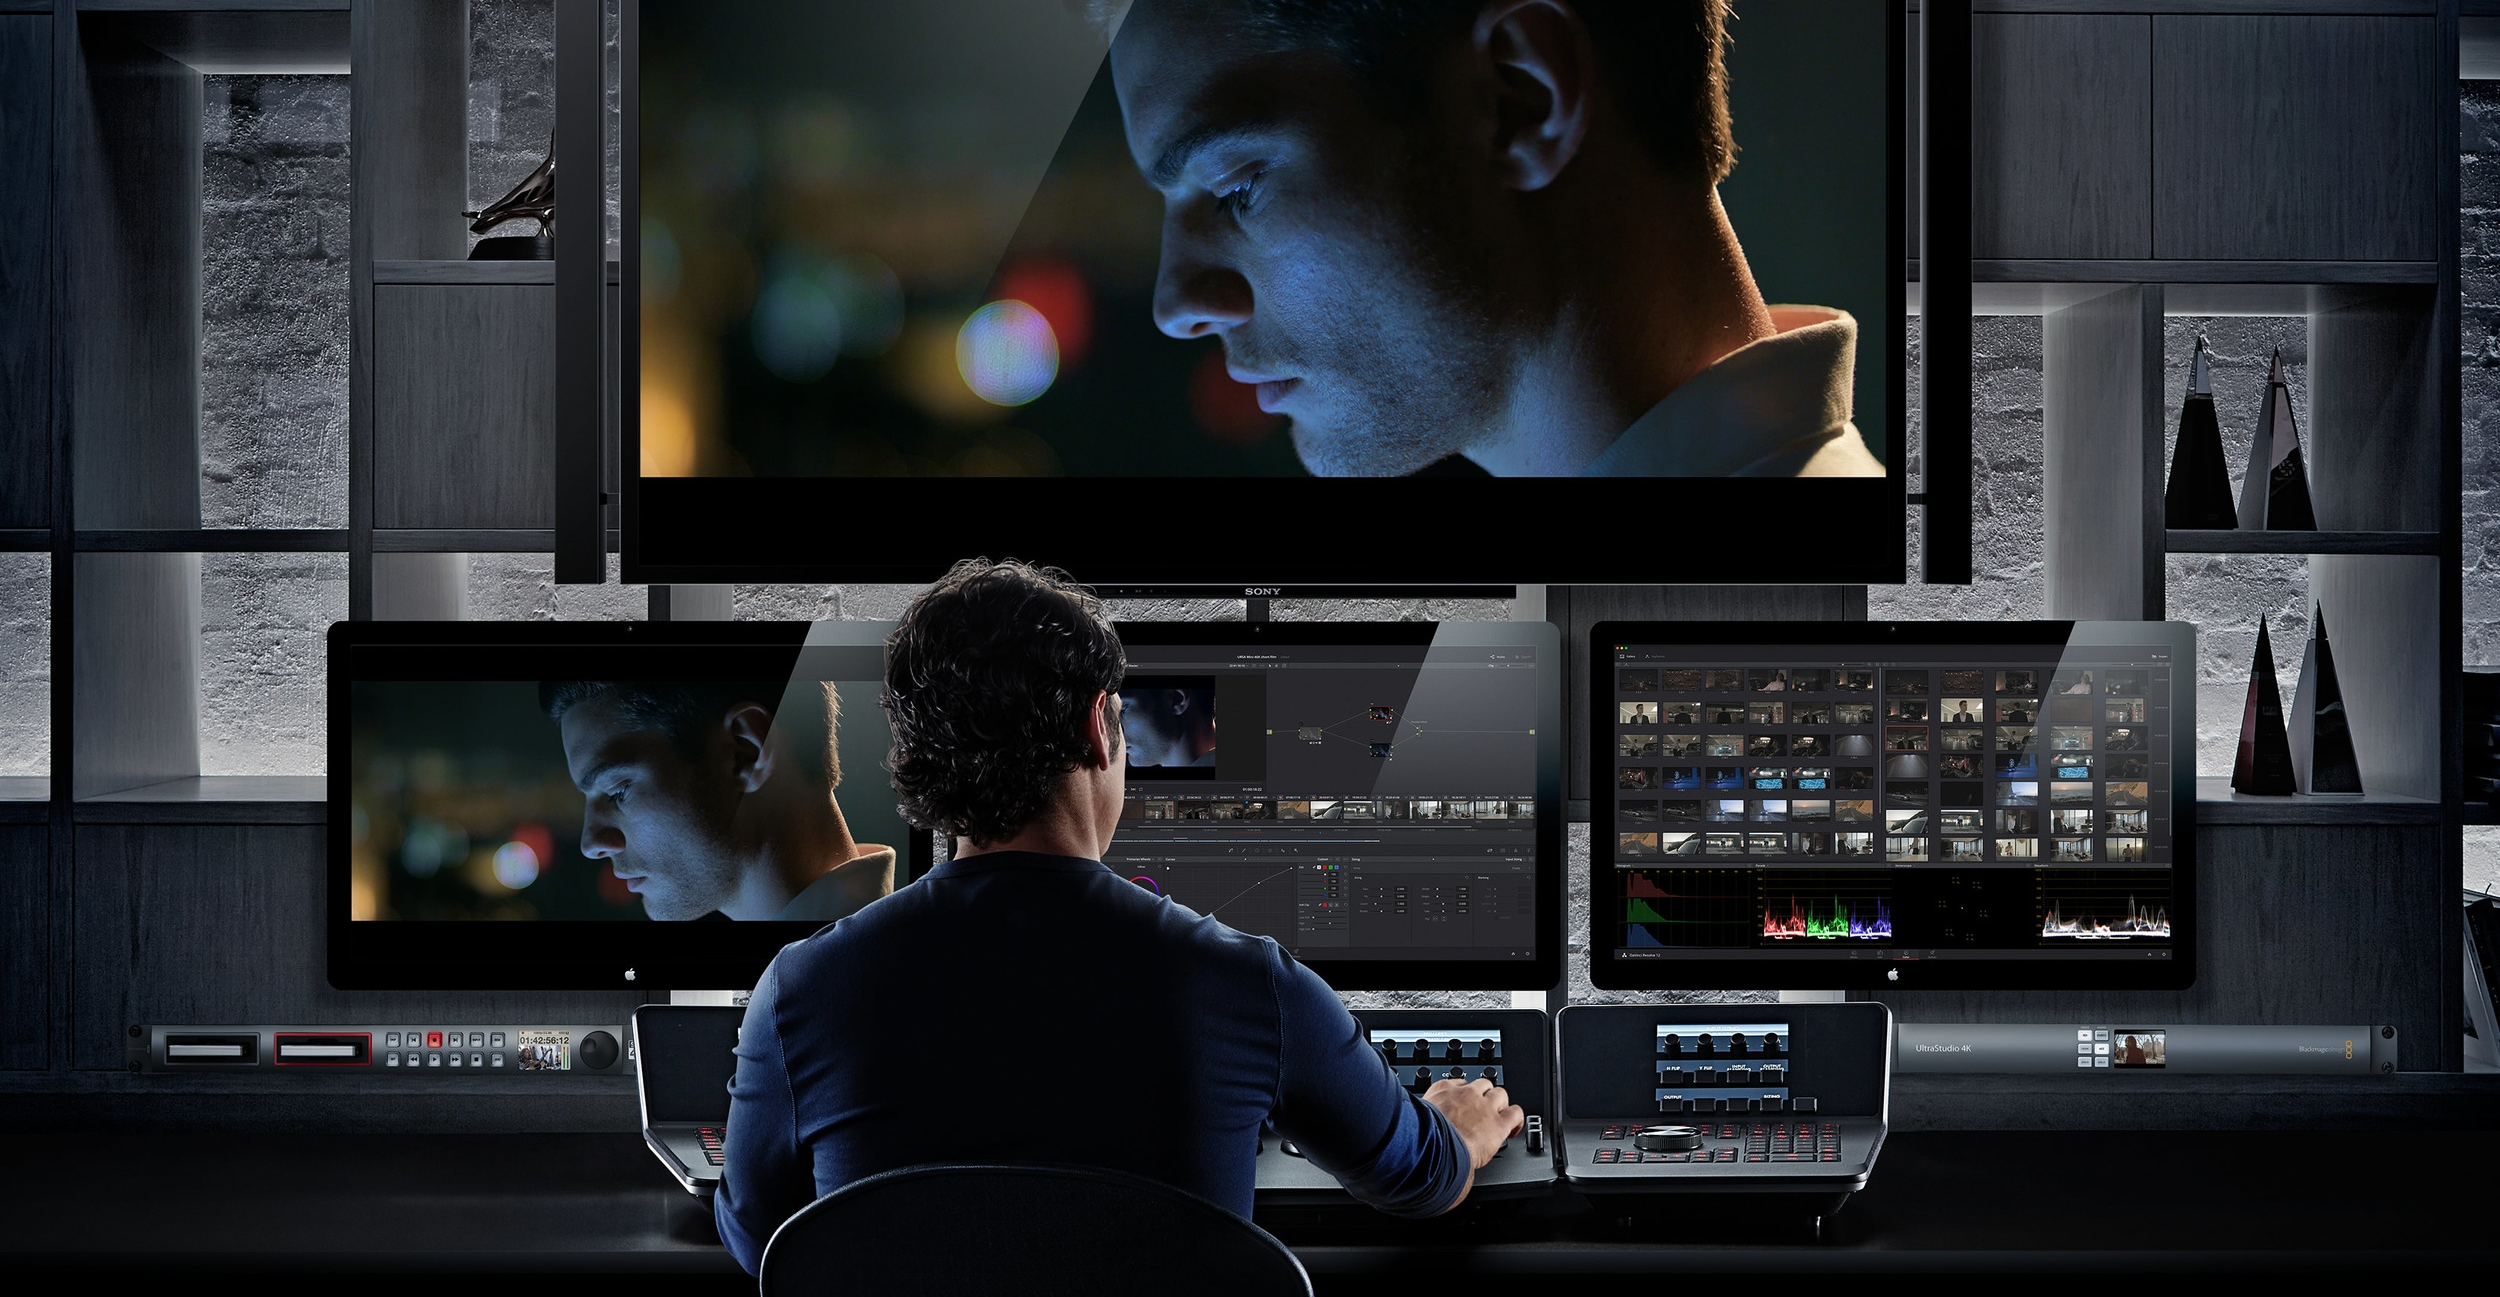 Download Davinci Resolve 12 5 Lite Free Sudip Shrestha Digital Cinema Colorist Video Colorist Based In Dubai Uae